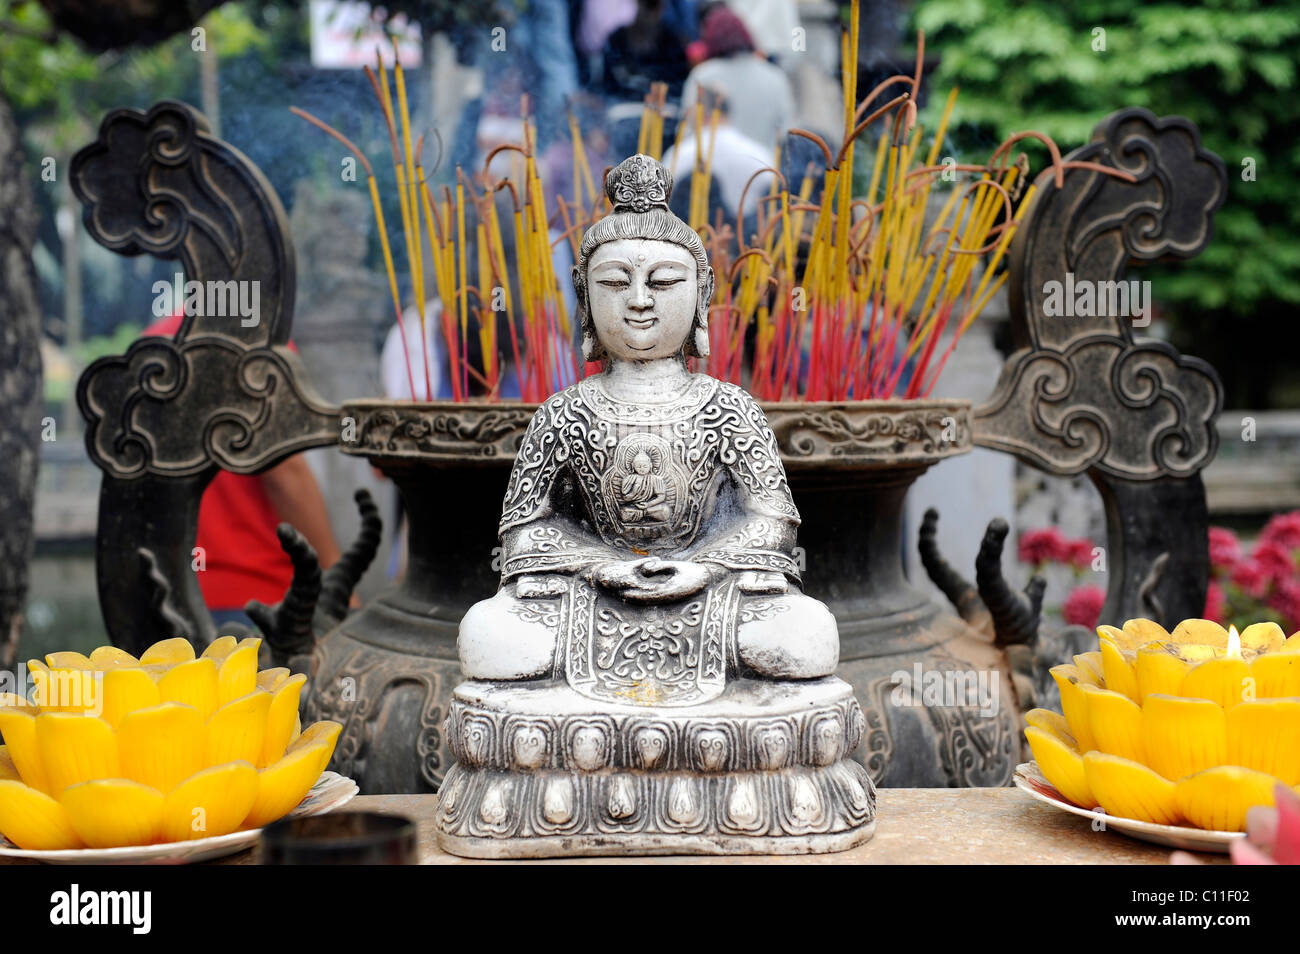 Buddha altar and incense in front of the One Pillar Pagoda, Hanoi, North Vietnam, Vietnam, Southeast Asia, Asia - Stock Image